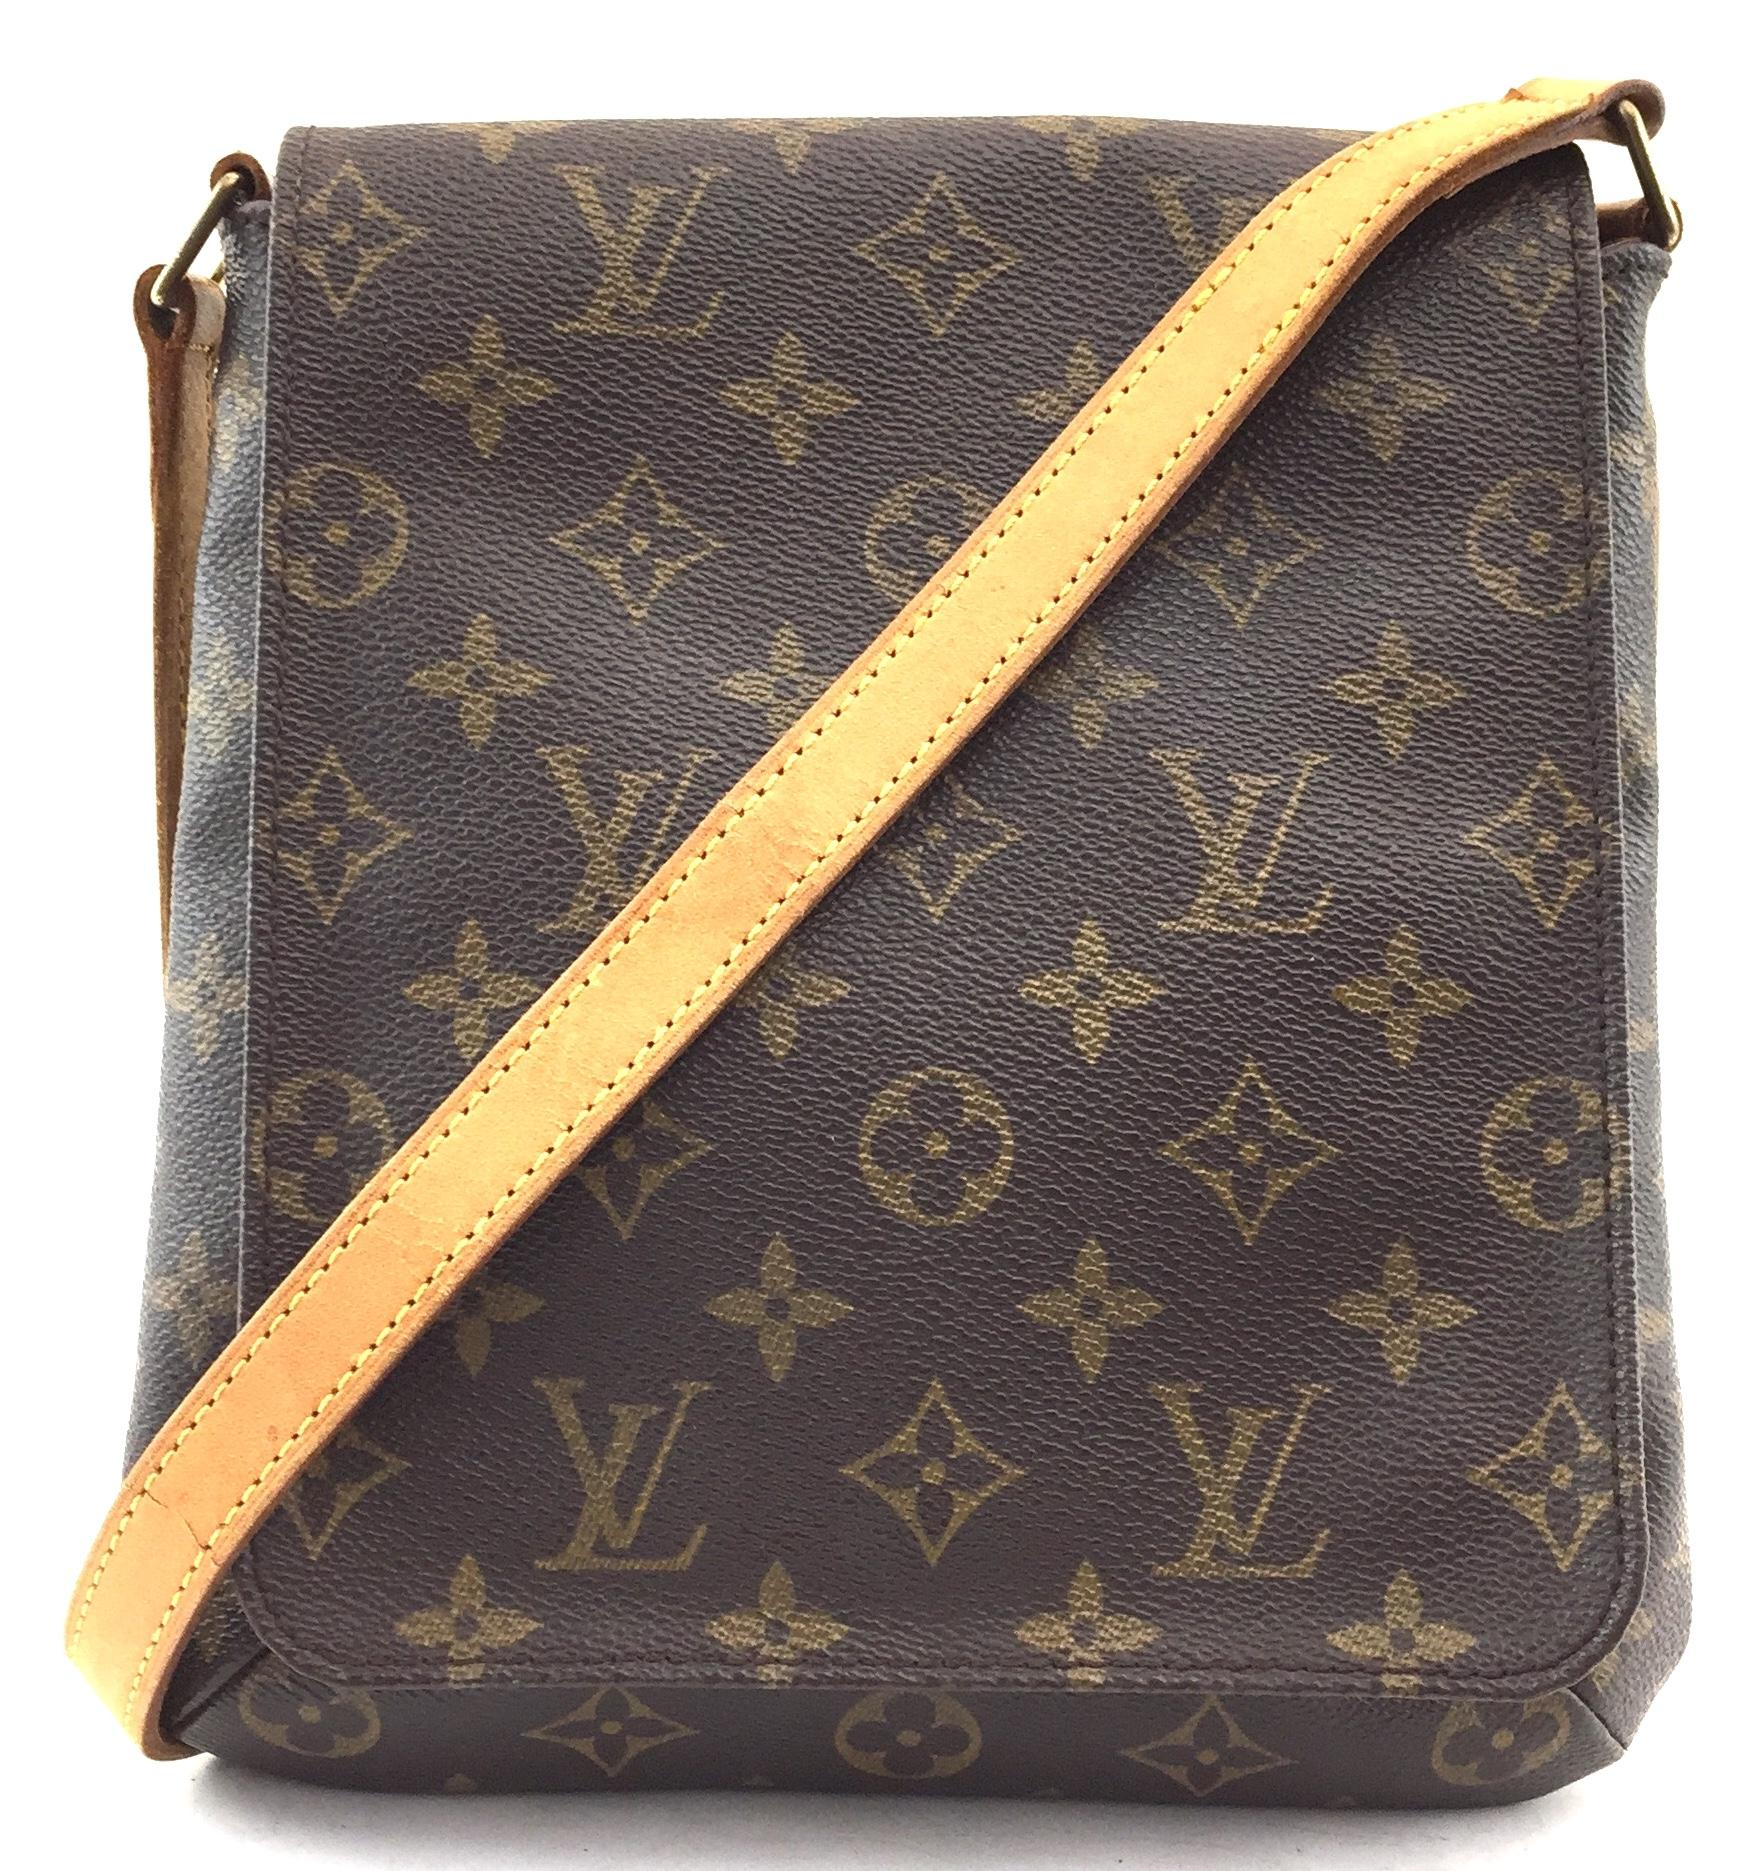 louis vuitton bags. louis vuitton cross body bag bags